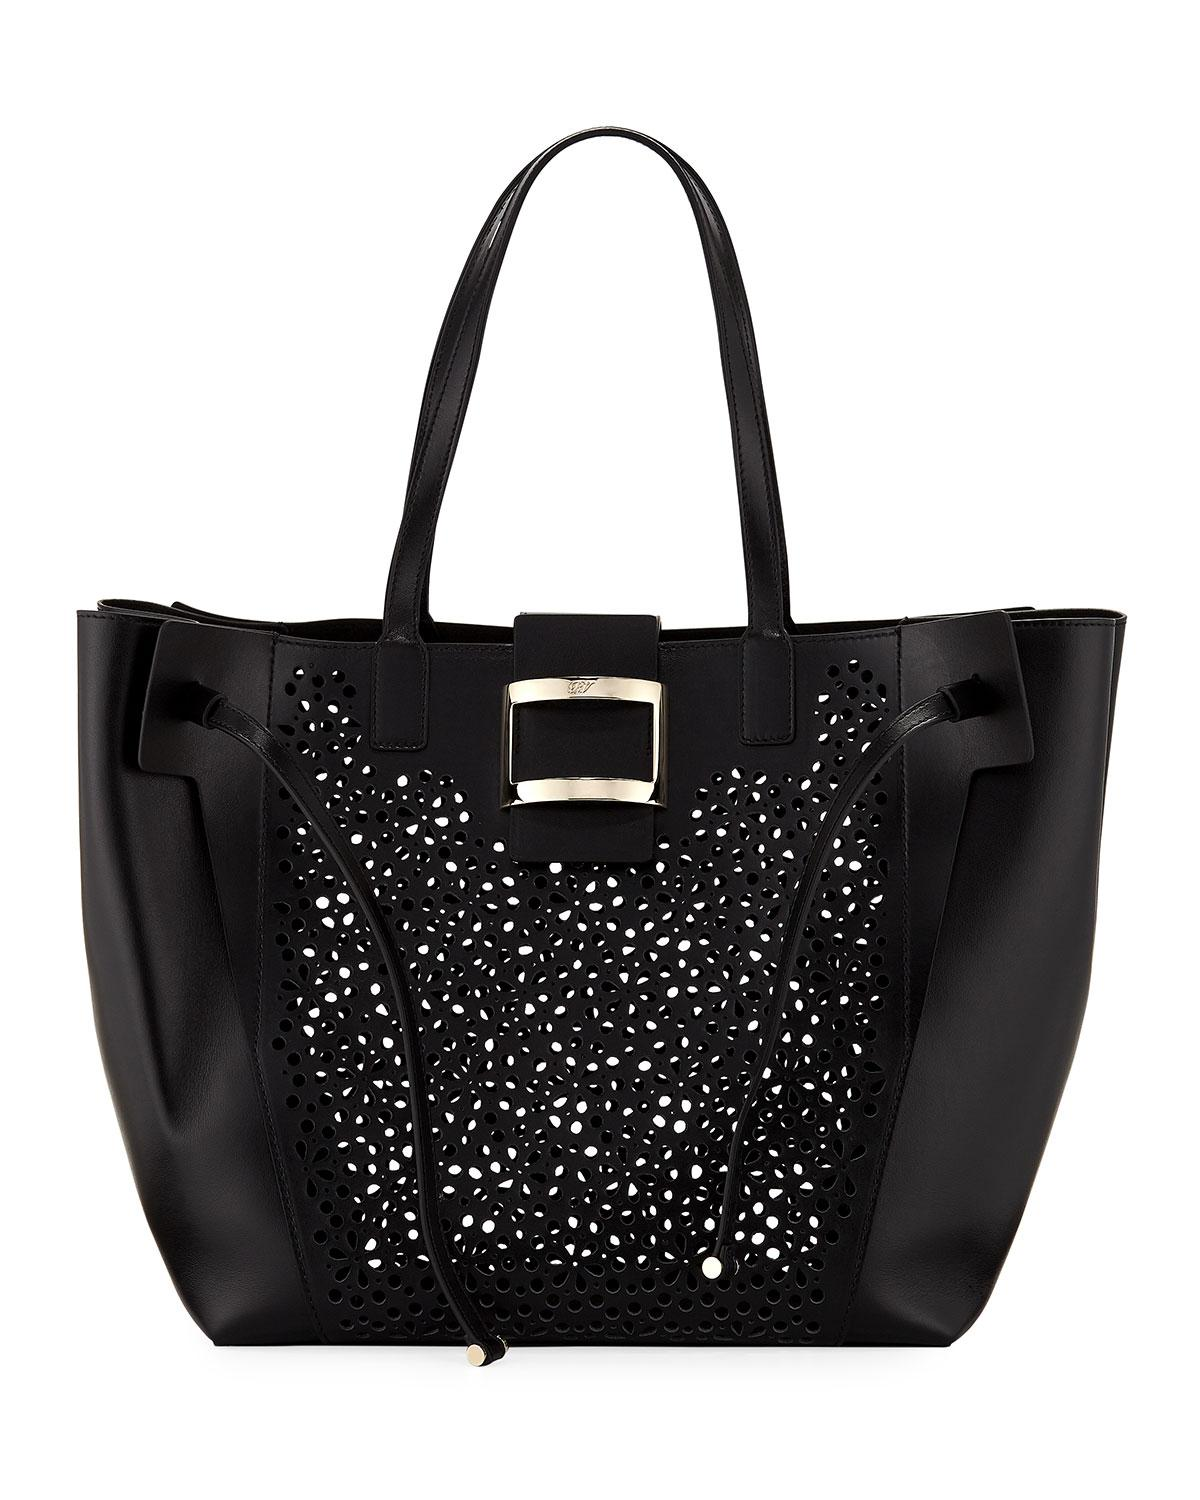 Lyst - Roger Vivier Viv Large Perforated Tote Bag in Black 8b727677197f8